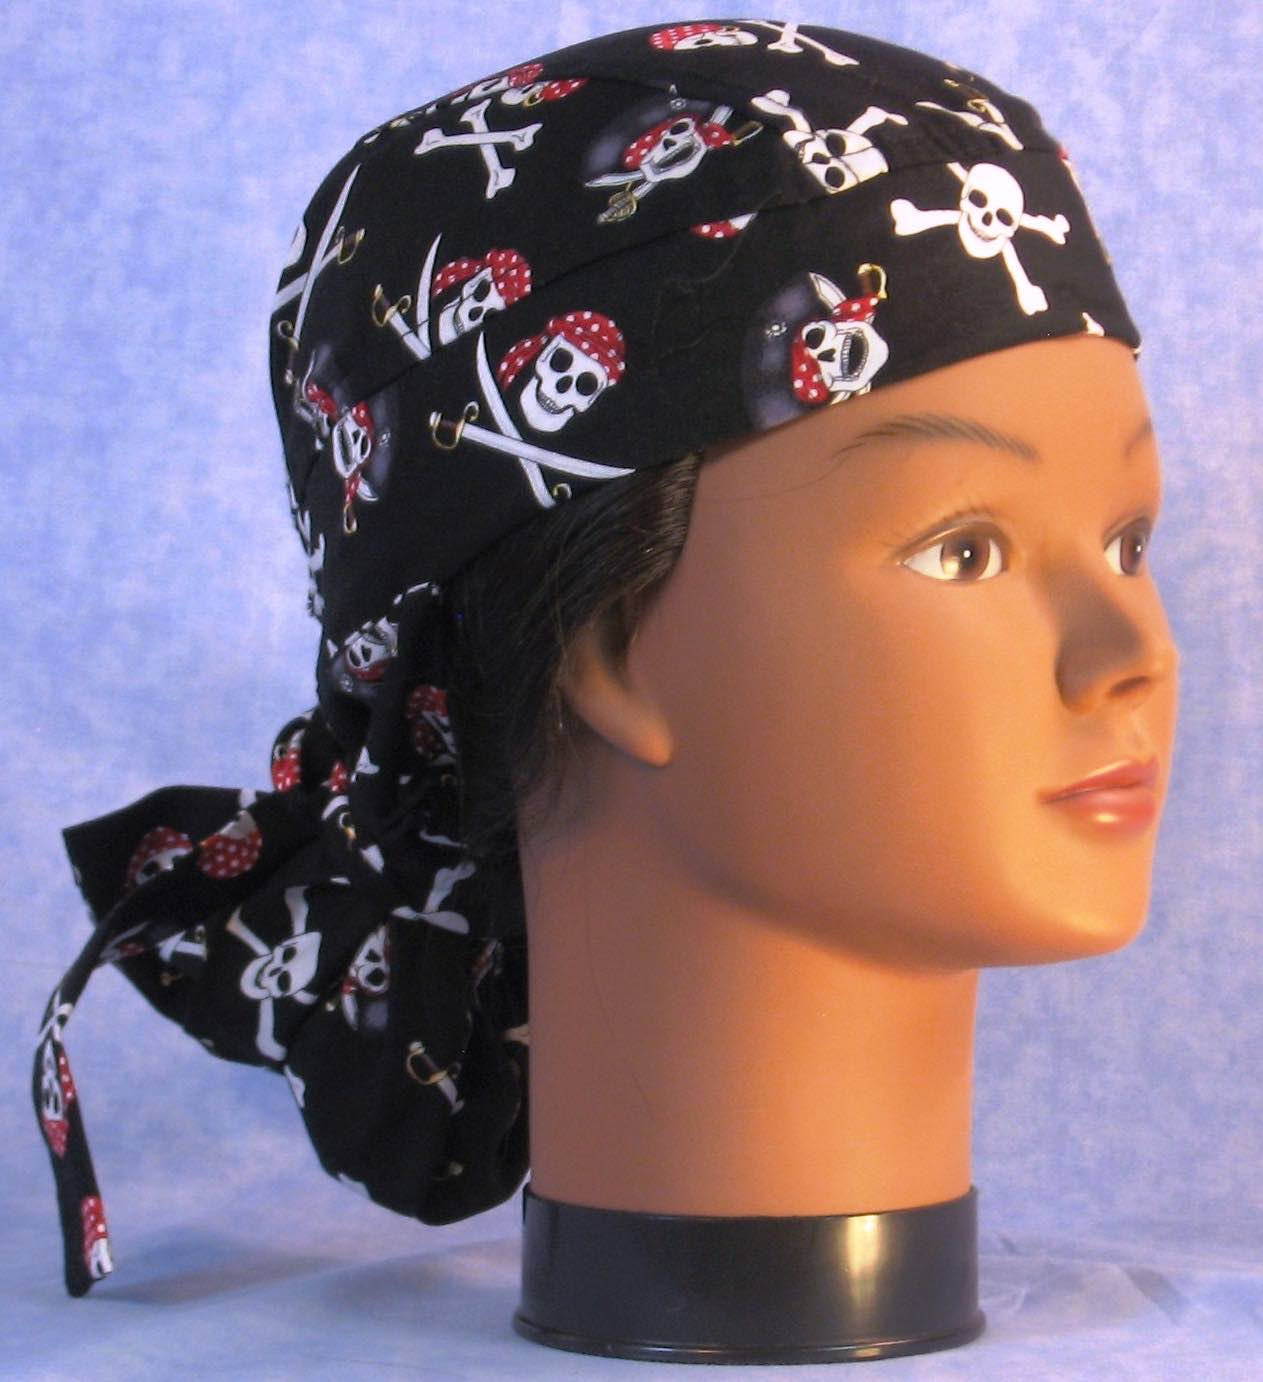 Hair Bag in Black Pirate Skulls - gal right front